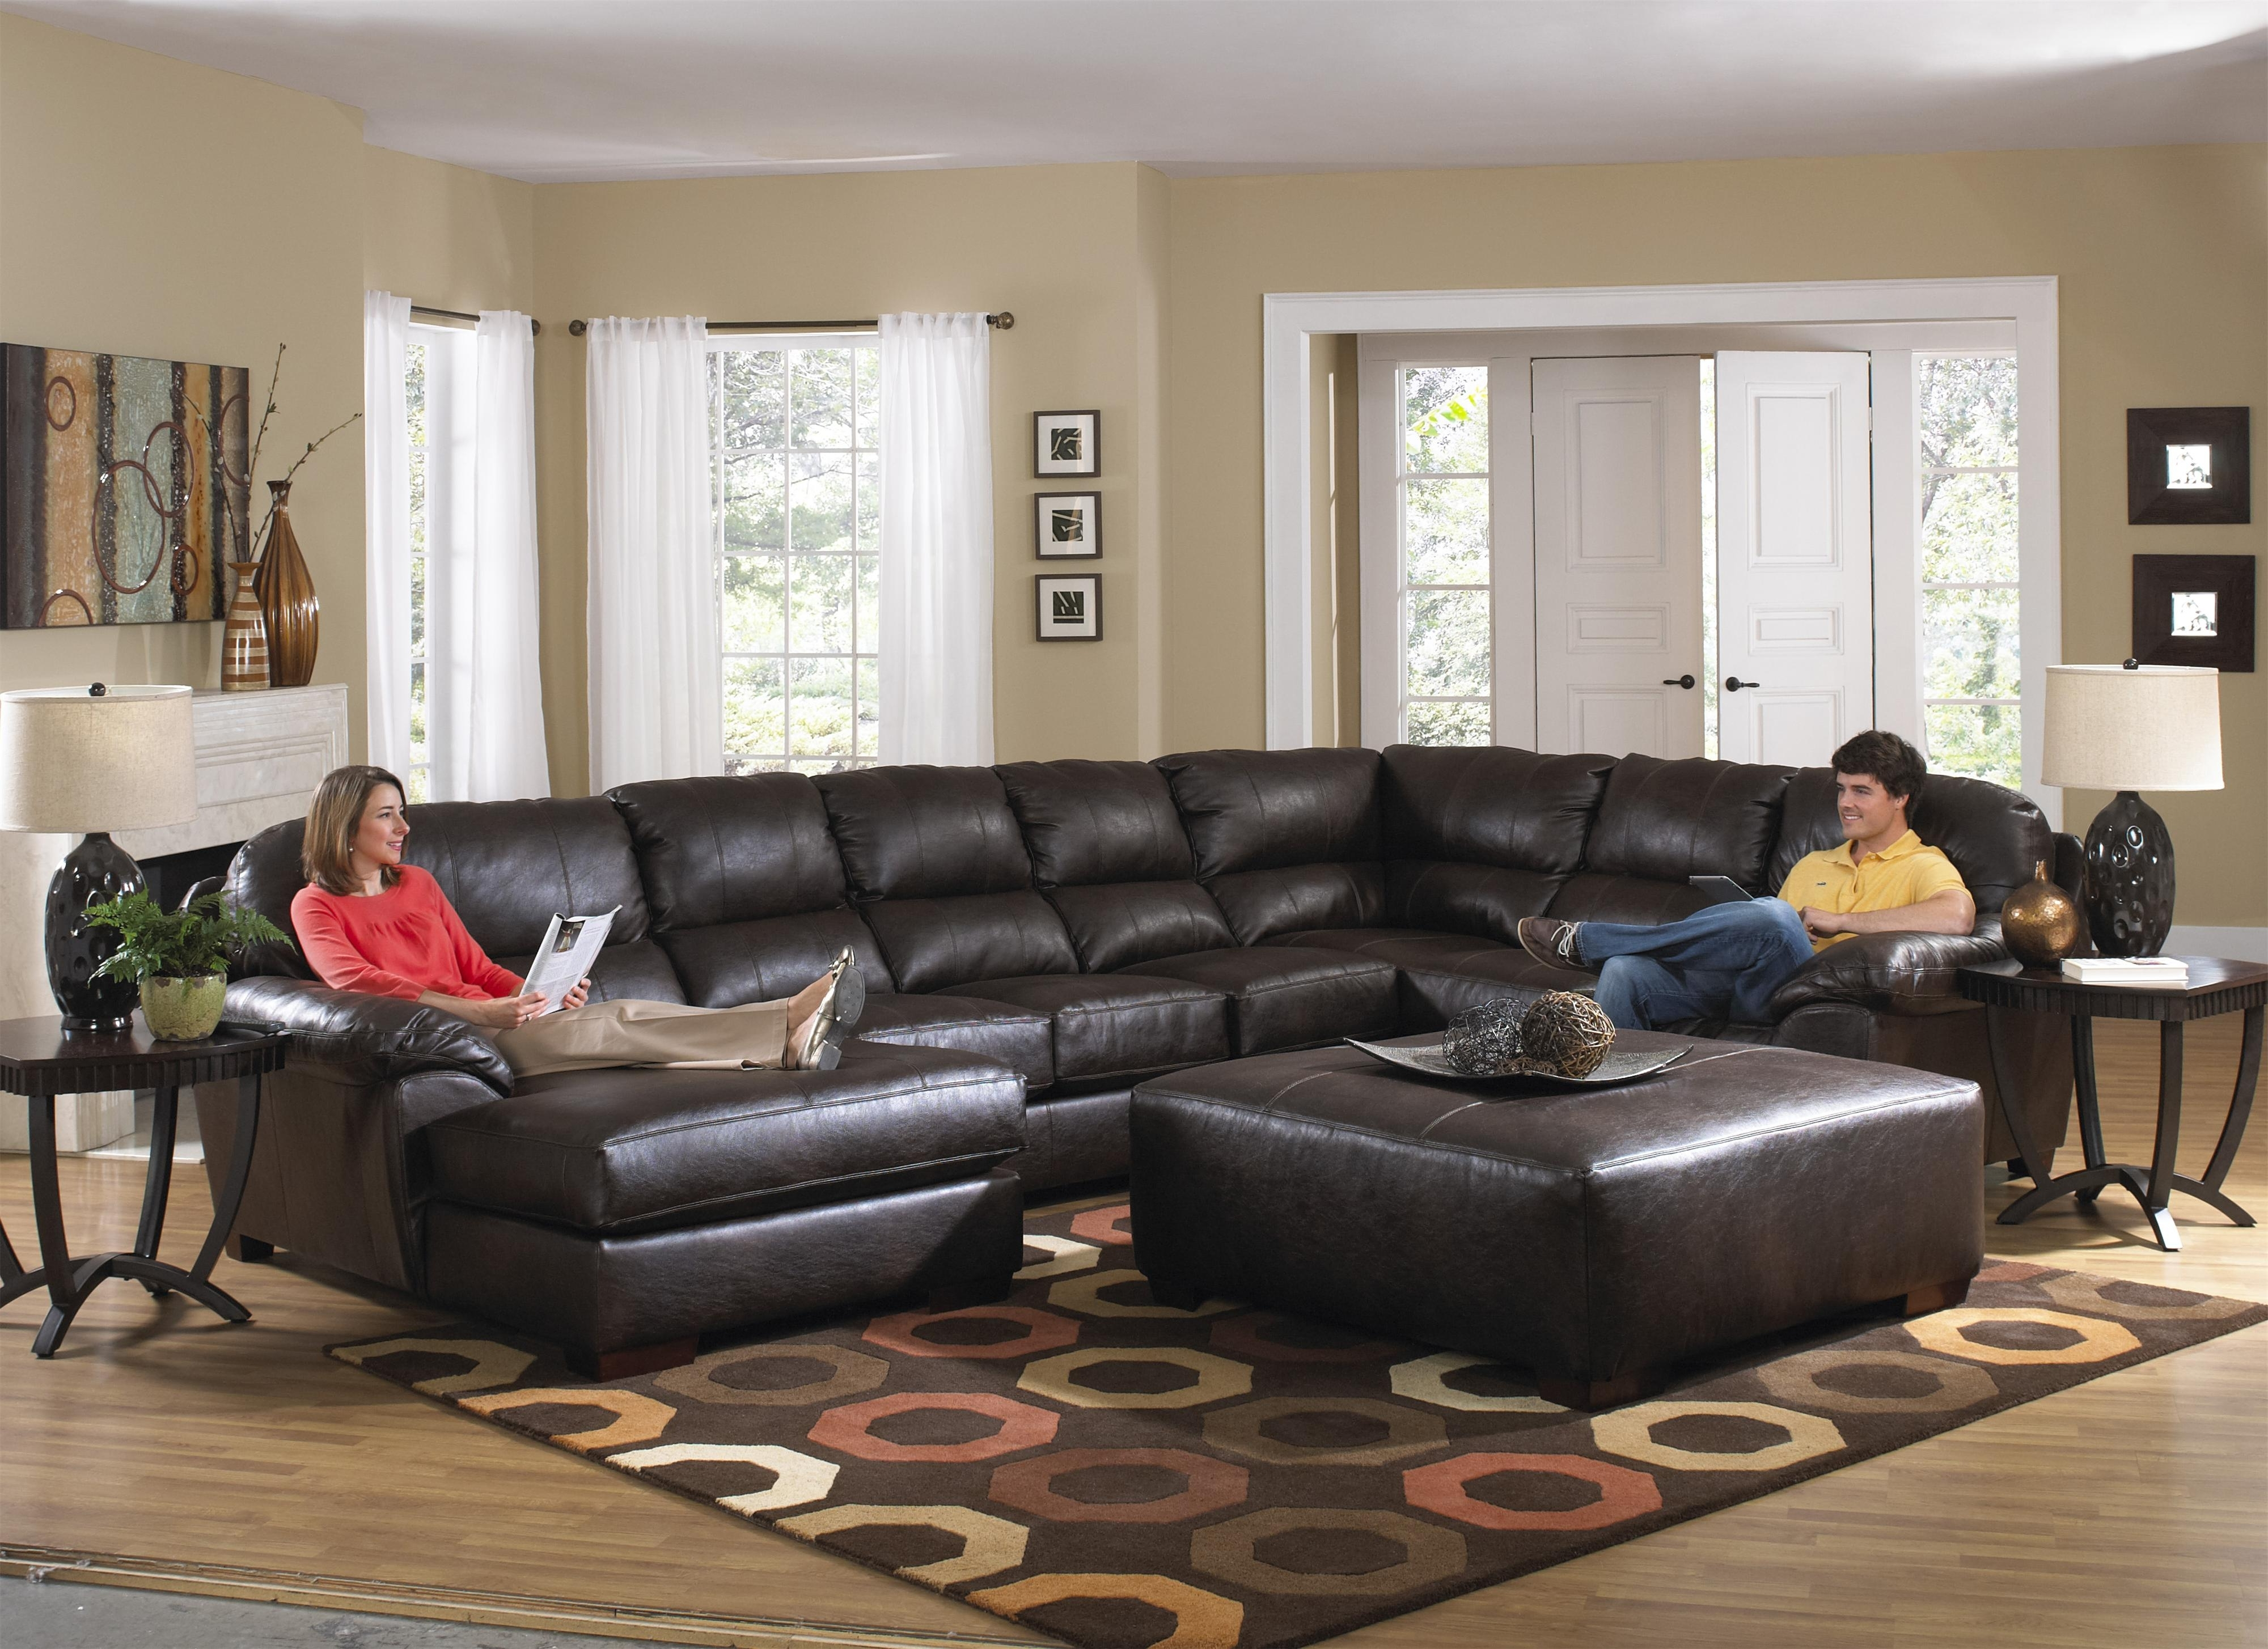 Widely Used Large Sectional Sofa With Chaise Lounge Cheap Sectional Sofas U For Large U Shaped Sectionals (View 20 of 20)